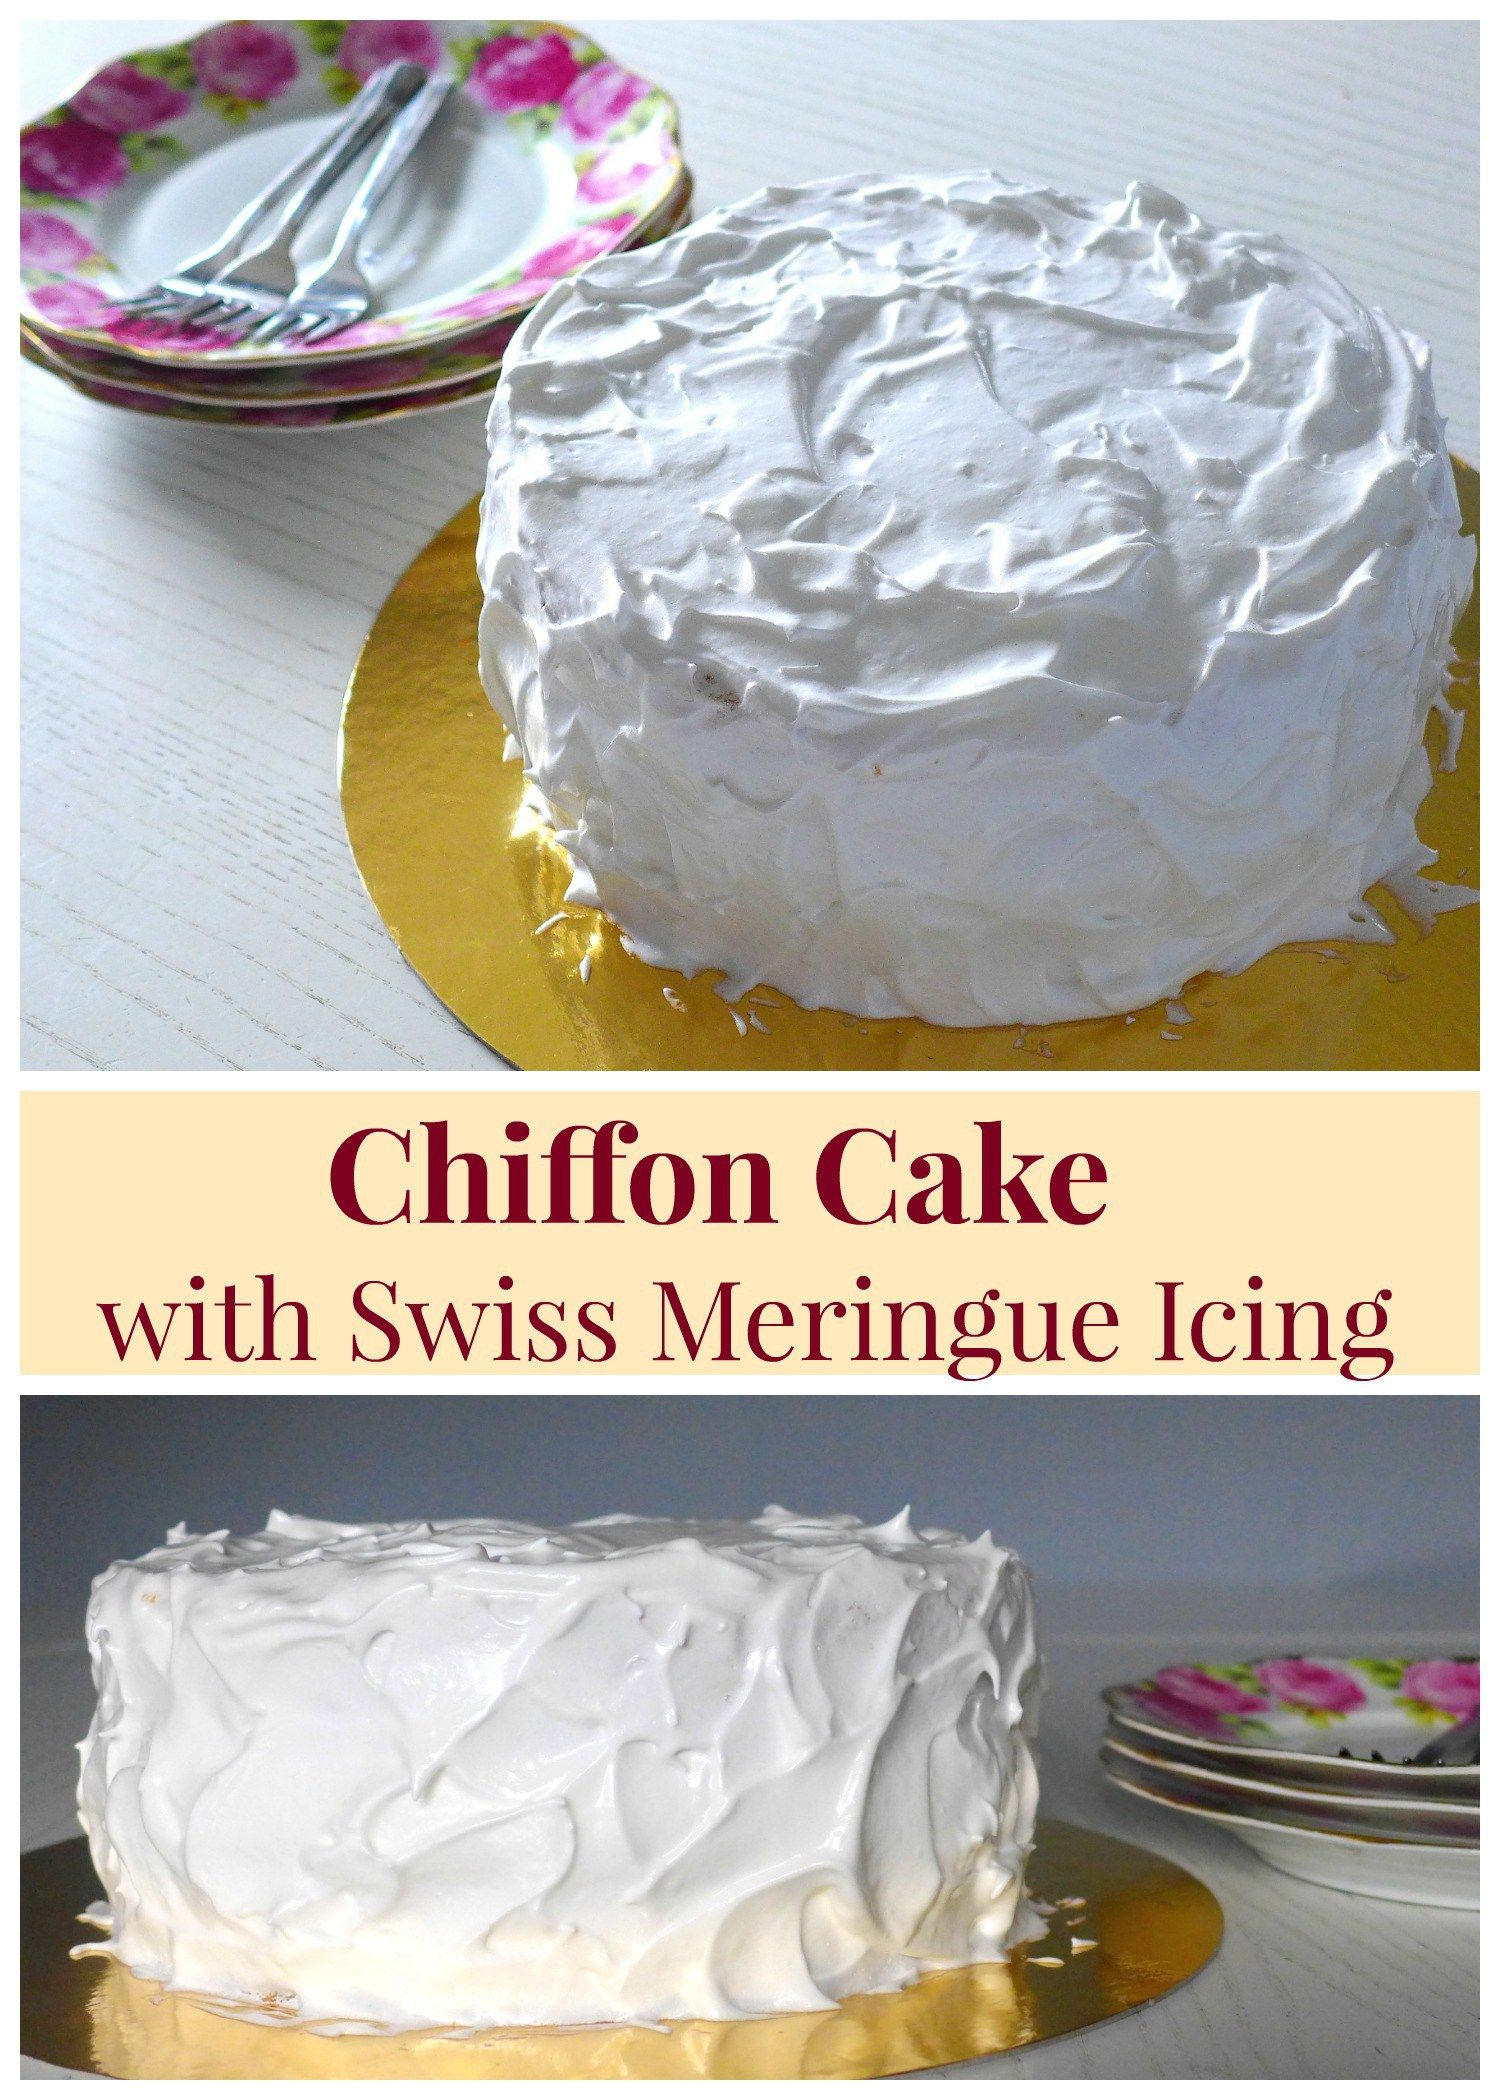 Sensational Chiffon Cake With Swiss Meringue Icing Recipe Chiffon Cake Personalised Birthday Cards Paralily Jamesorg